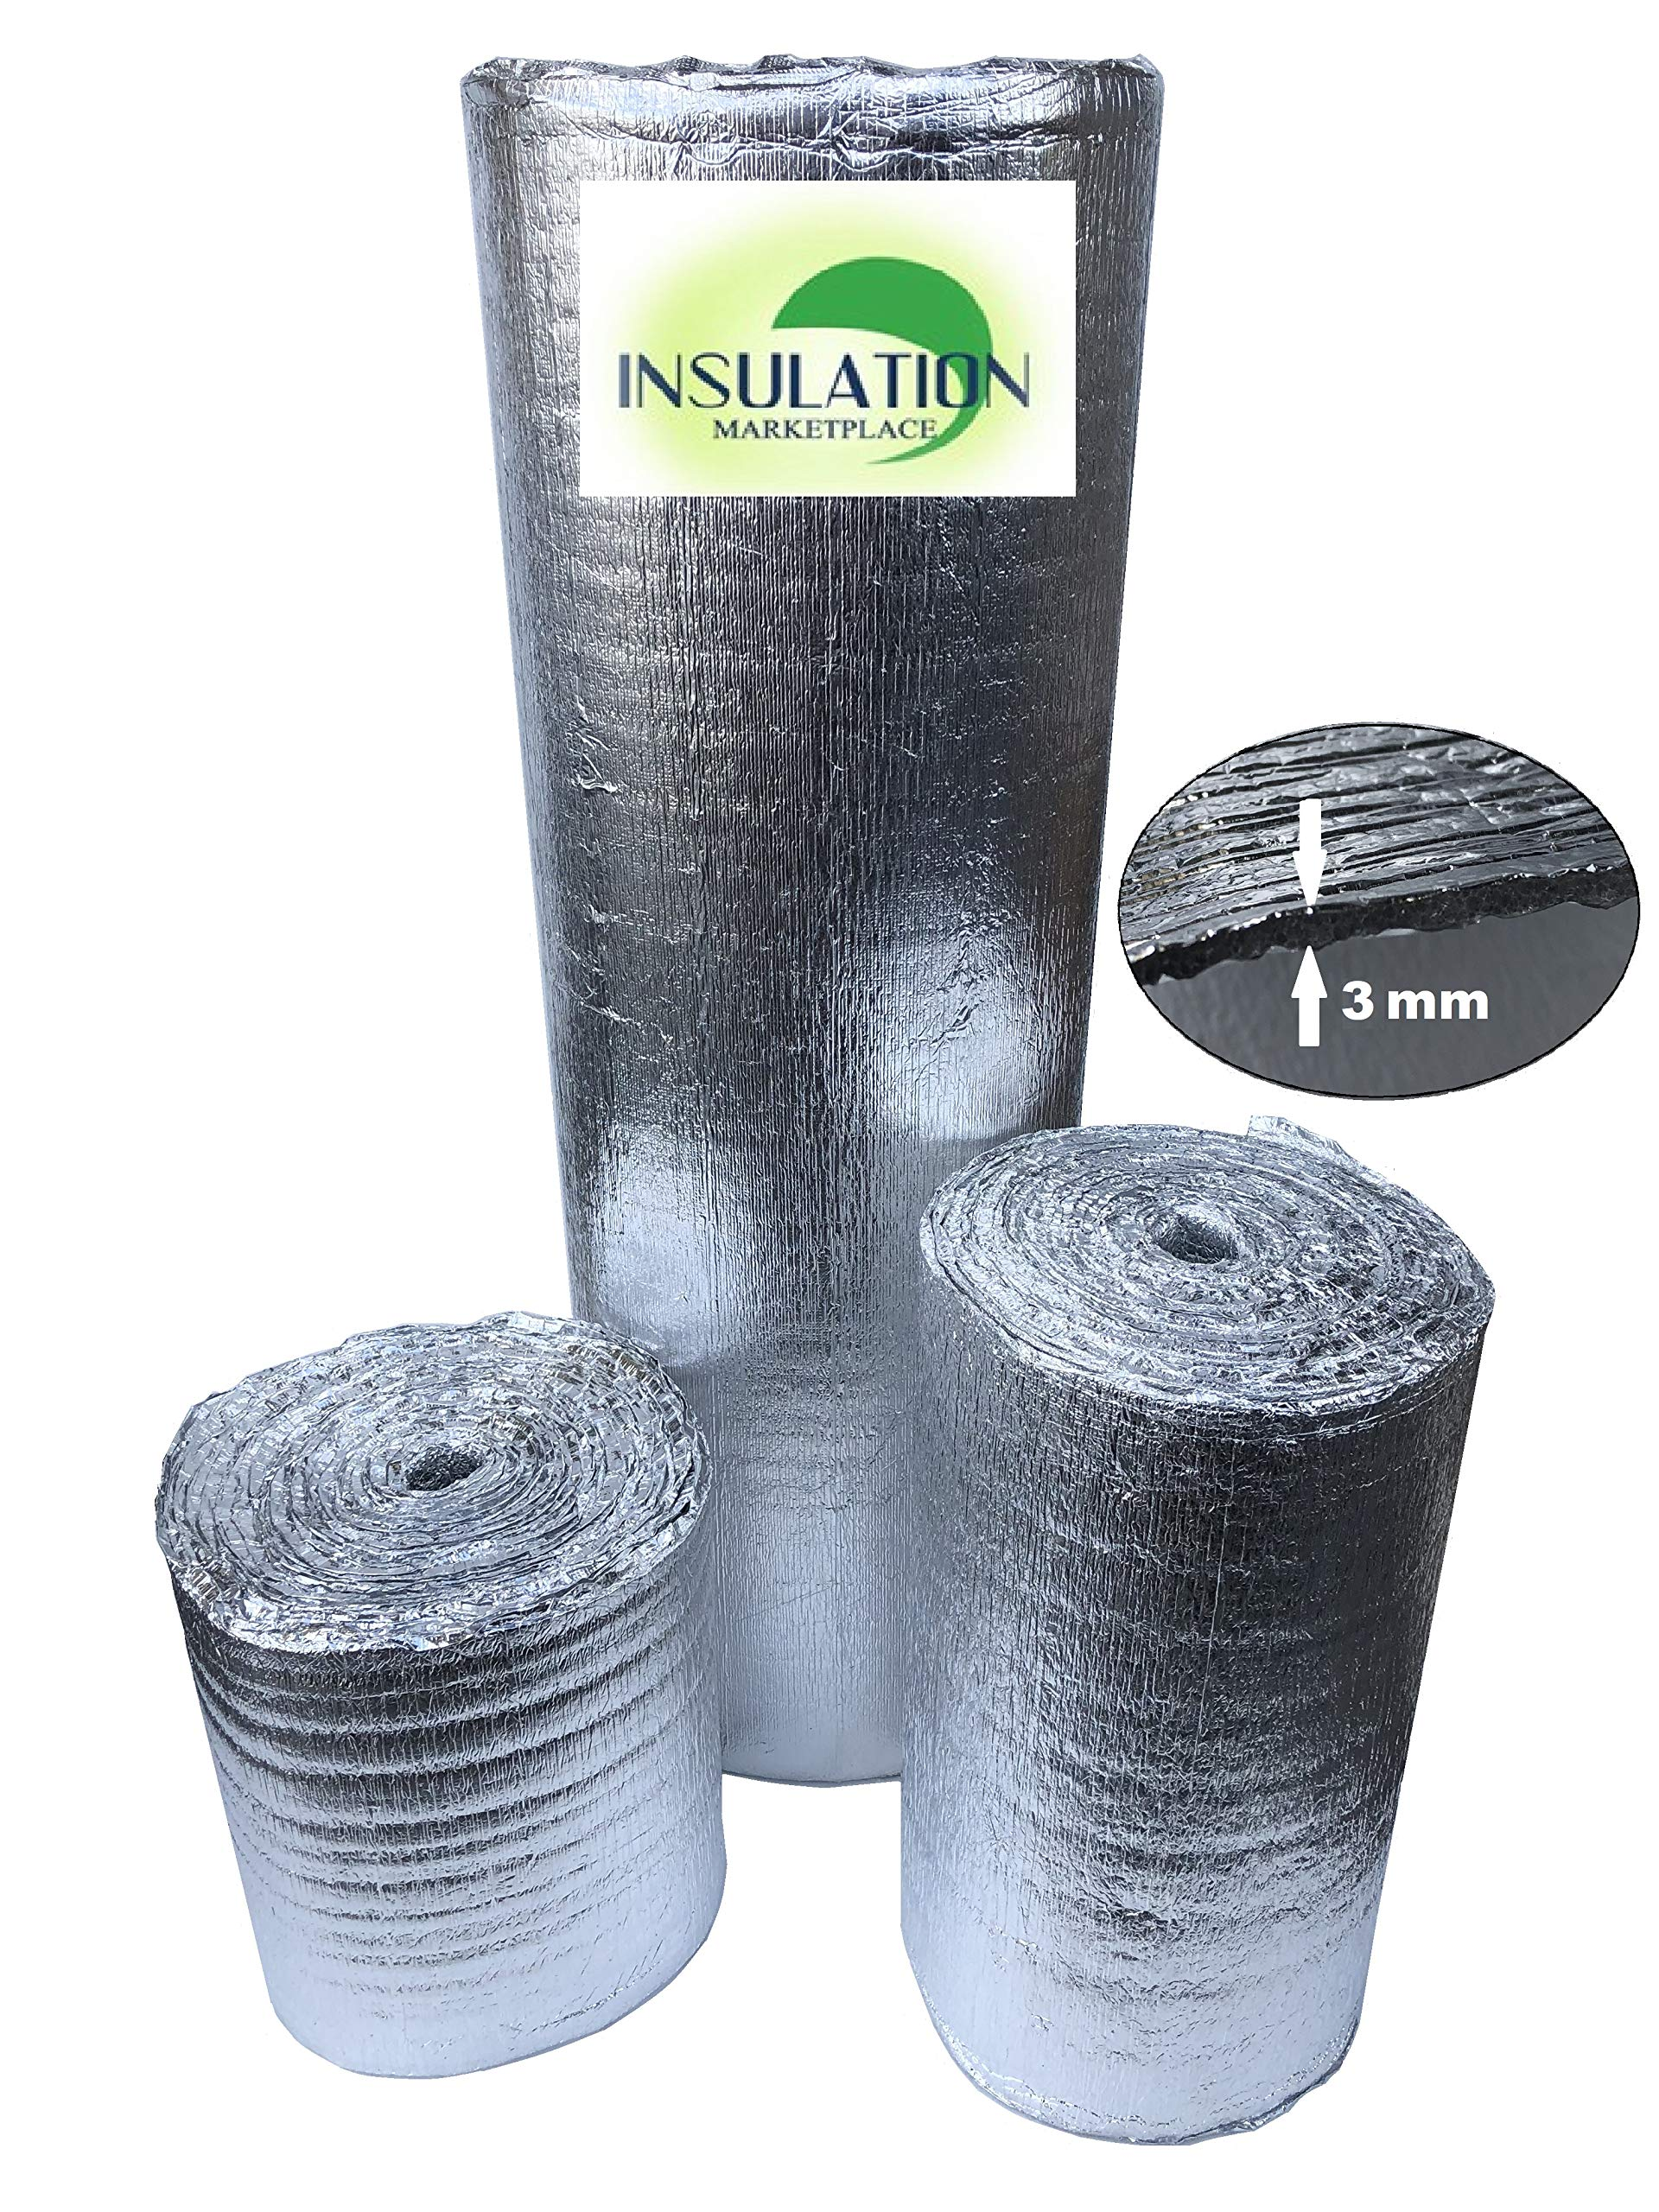 Reflective Insulation Shield, Heat Shield, Thermal Insulation Shield 16''x50ft, 24''x50ft, 48''x50ft, 48''x100ft (16''x50') by Insulation Market Place LLC